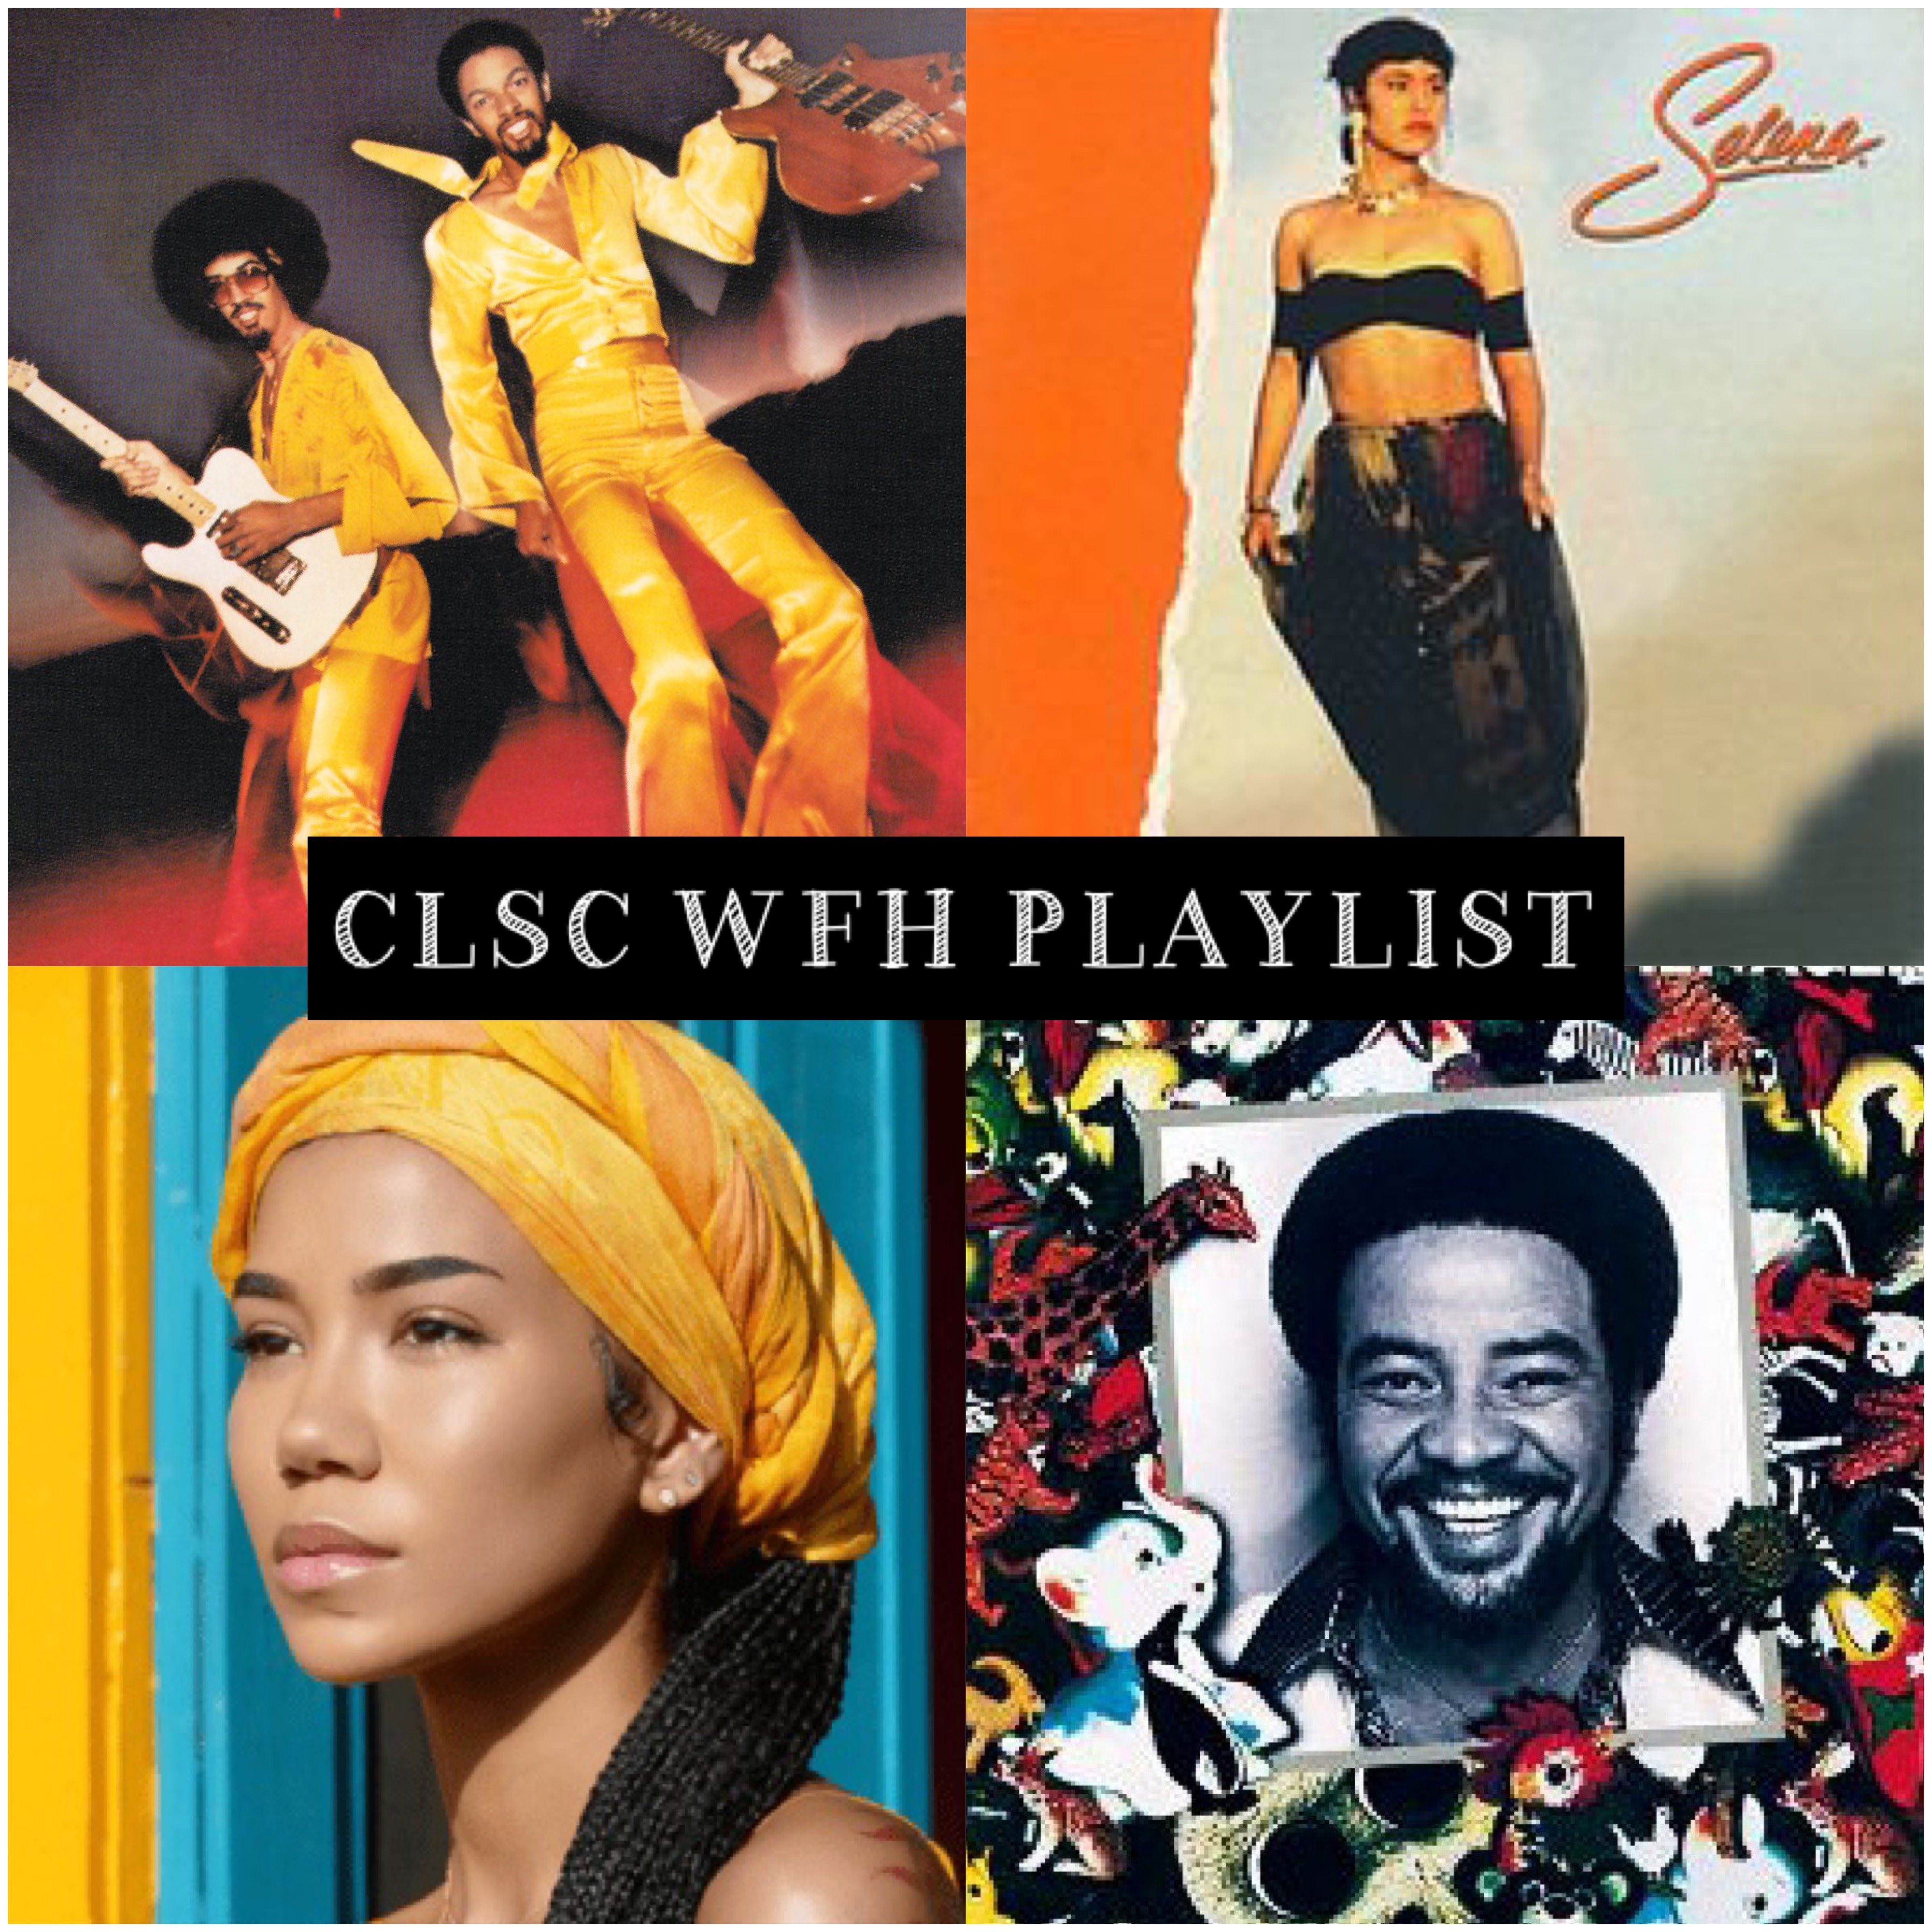 image shows album covers for Brothers Johnson, Selena, Jhene Aiko and Bill Withers